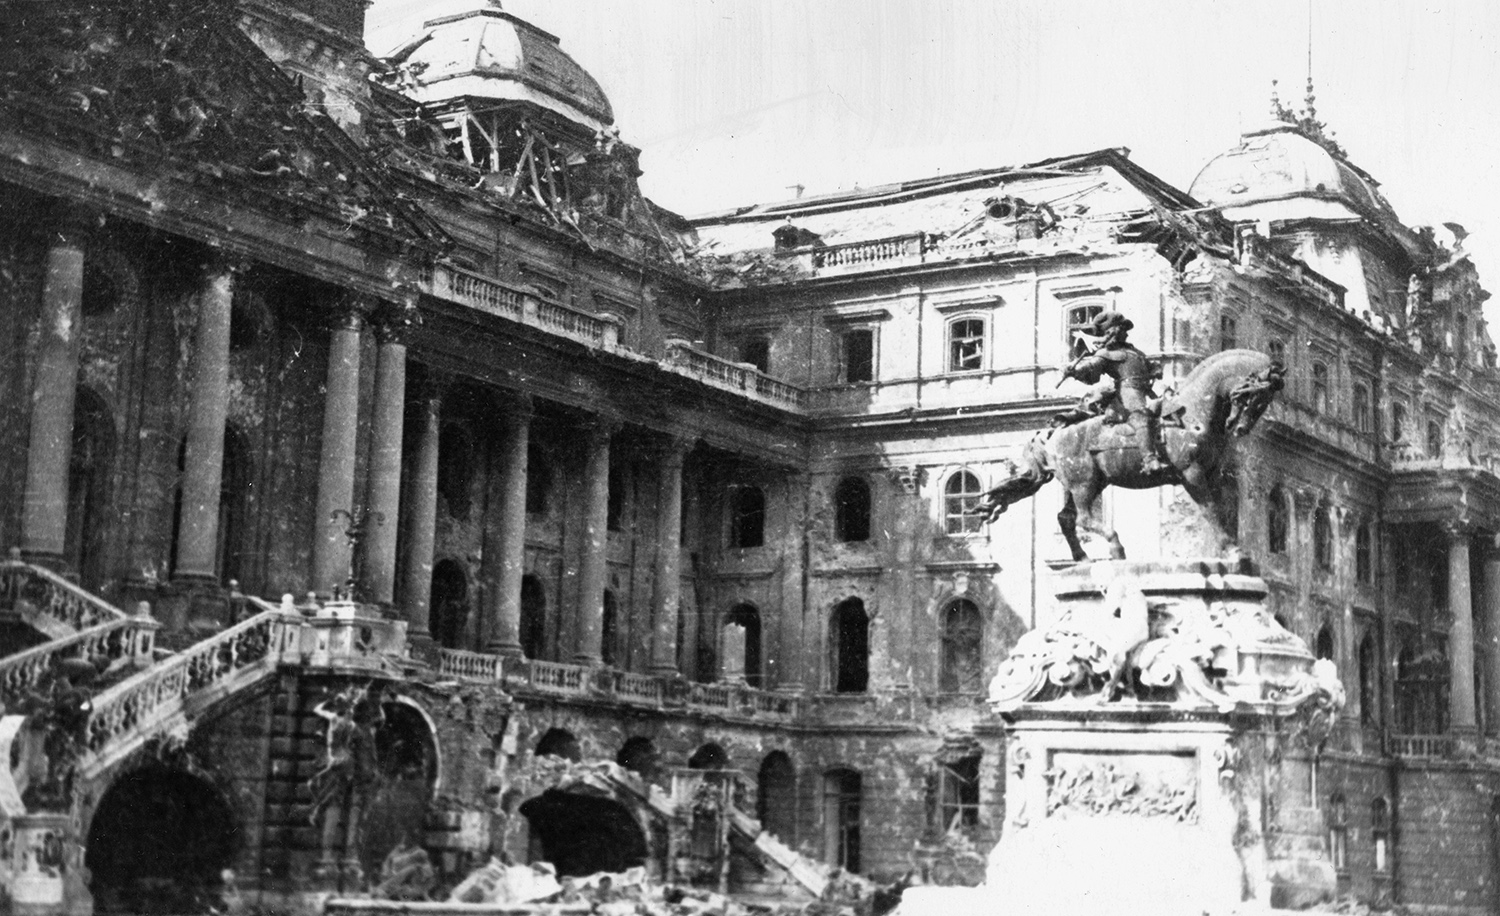 Budapest was completely bombed during World War II - PHOTO GALLERY